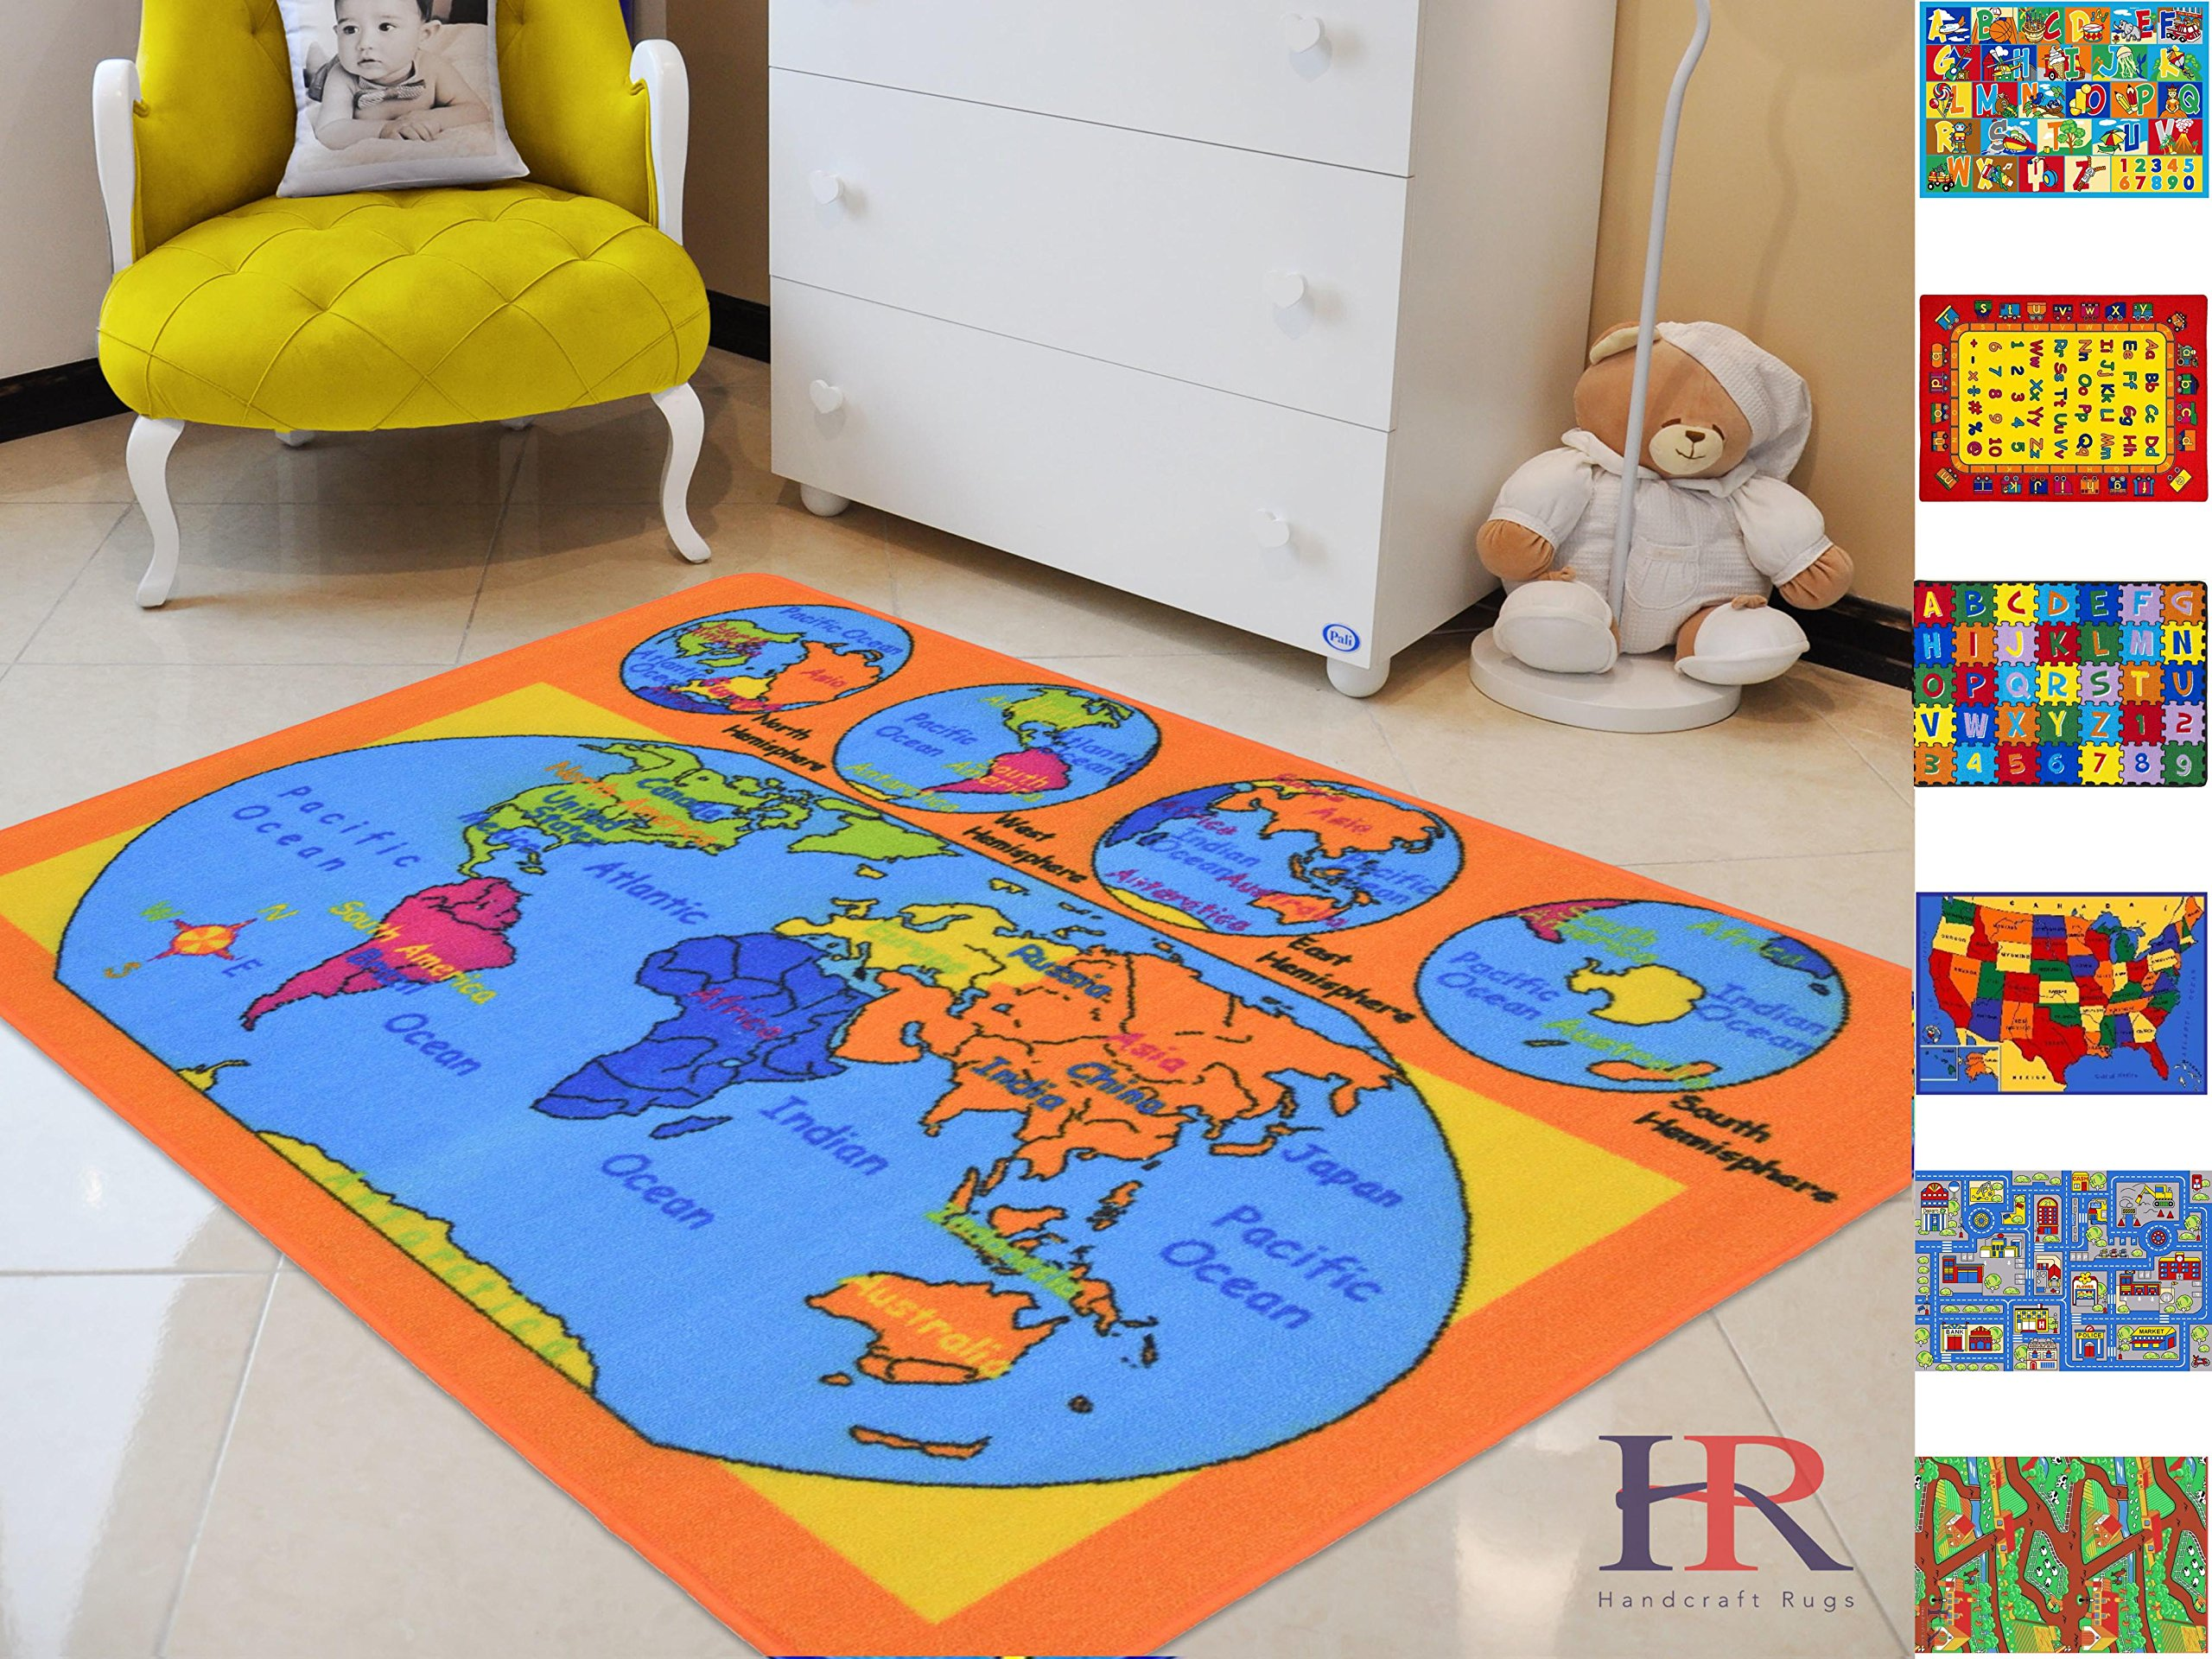 Handcraft Rugs-Kids Educational/Playtime/ Non-Slip Rugs World Map Puzzle Orange and Multi Color 8 ft. by 10 ft.(WORLD MAP)